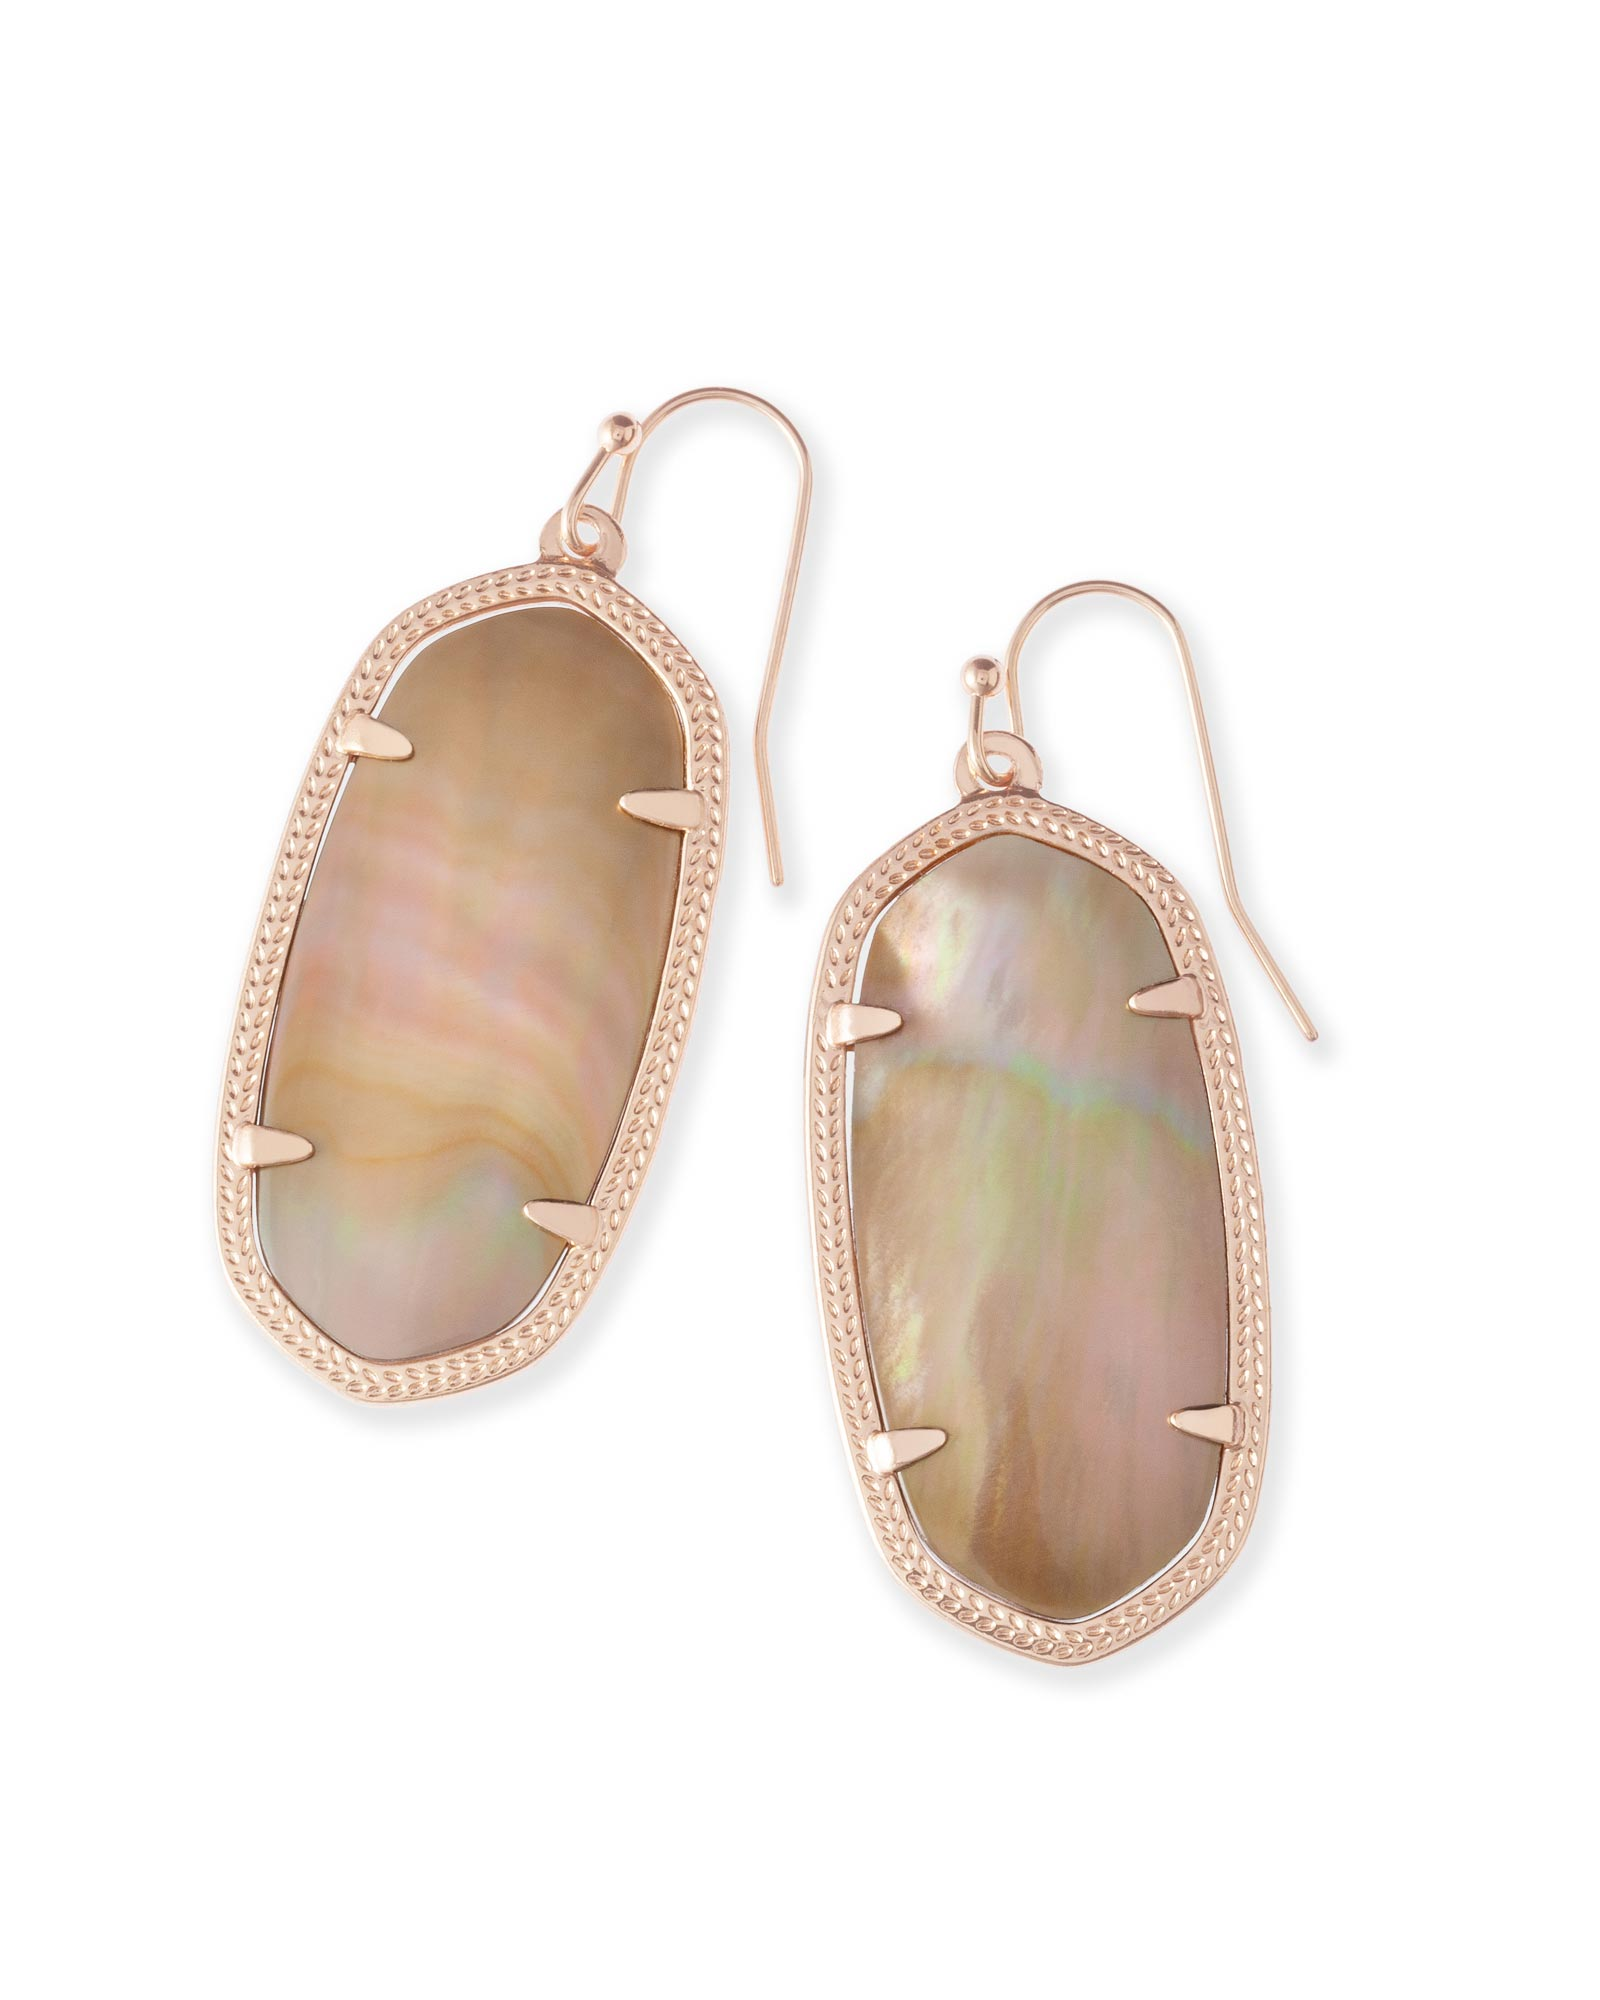 Elle Rose Gold Drop Earrings In Brown Mother Of Pearl